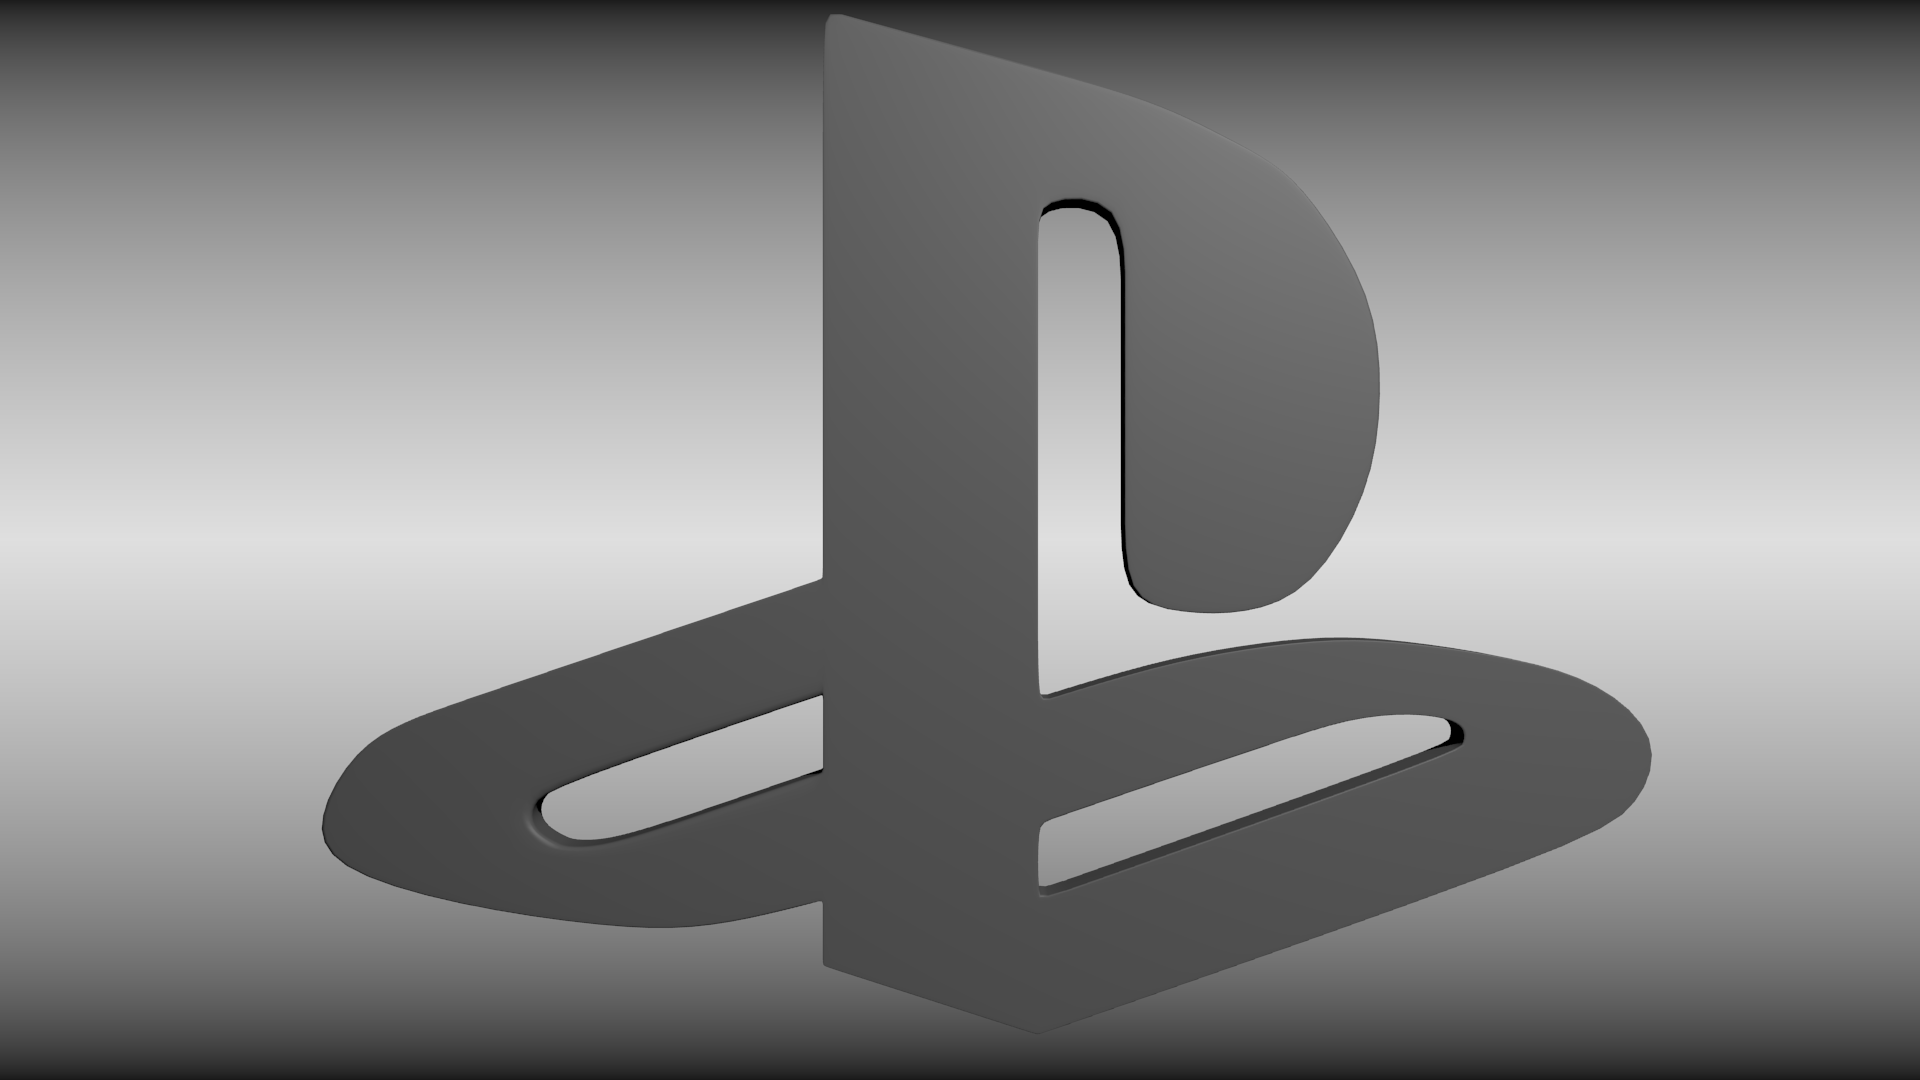 Playstation logo free 3d model obj 3ds fbx blend dae - High resolution playstation logo ...